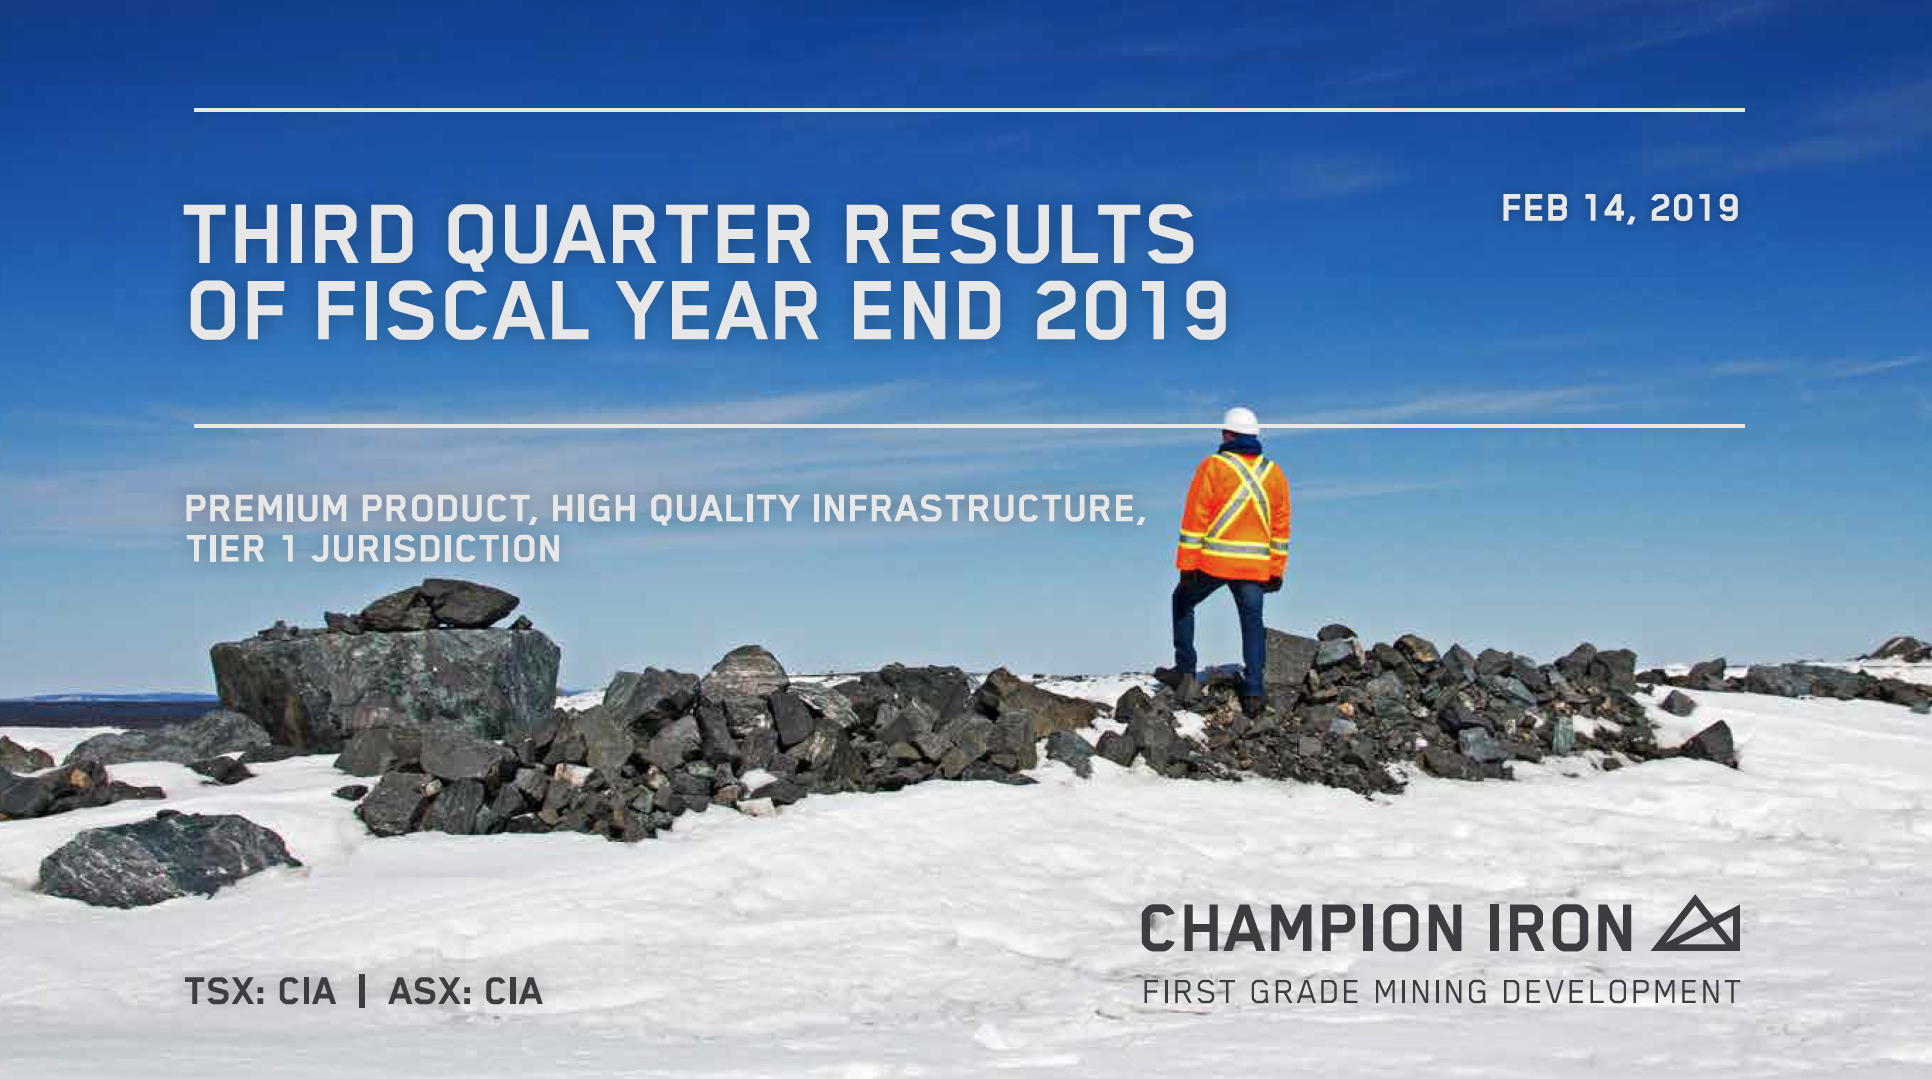 Third quarter results of fiscal year end 2019